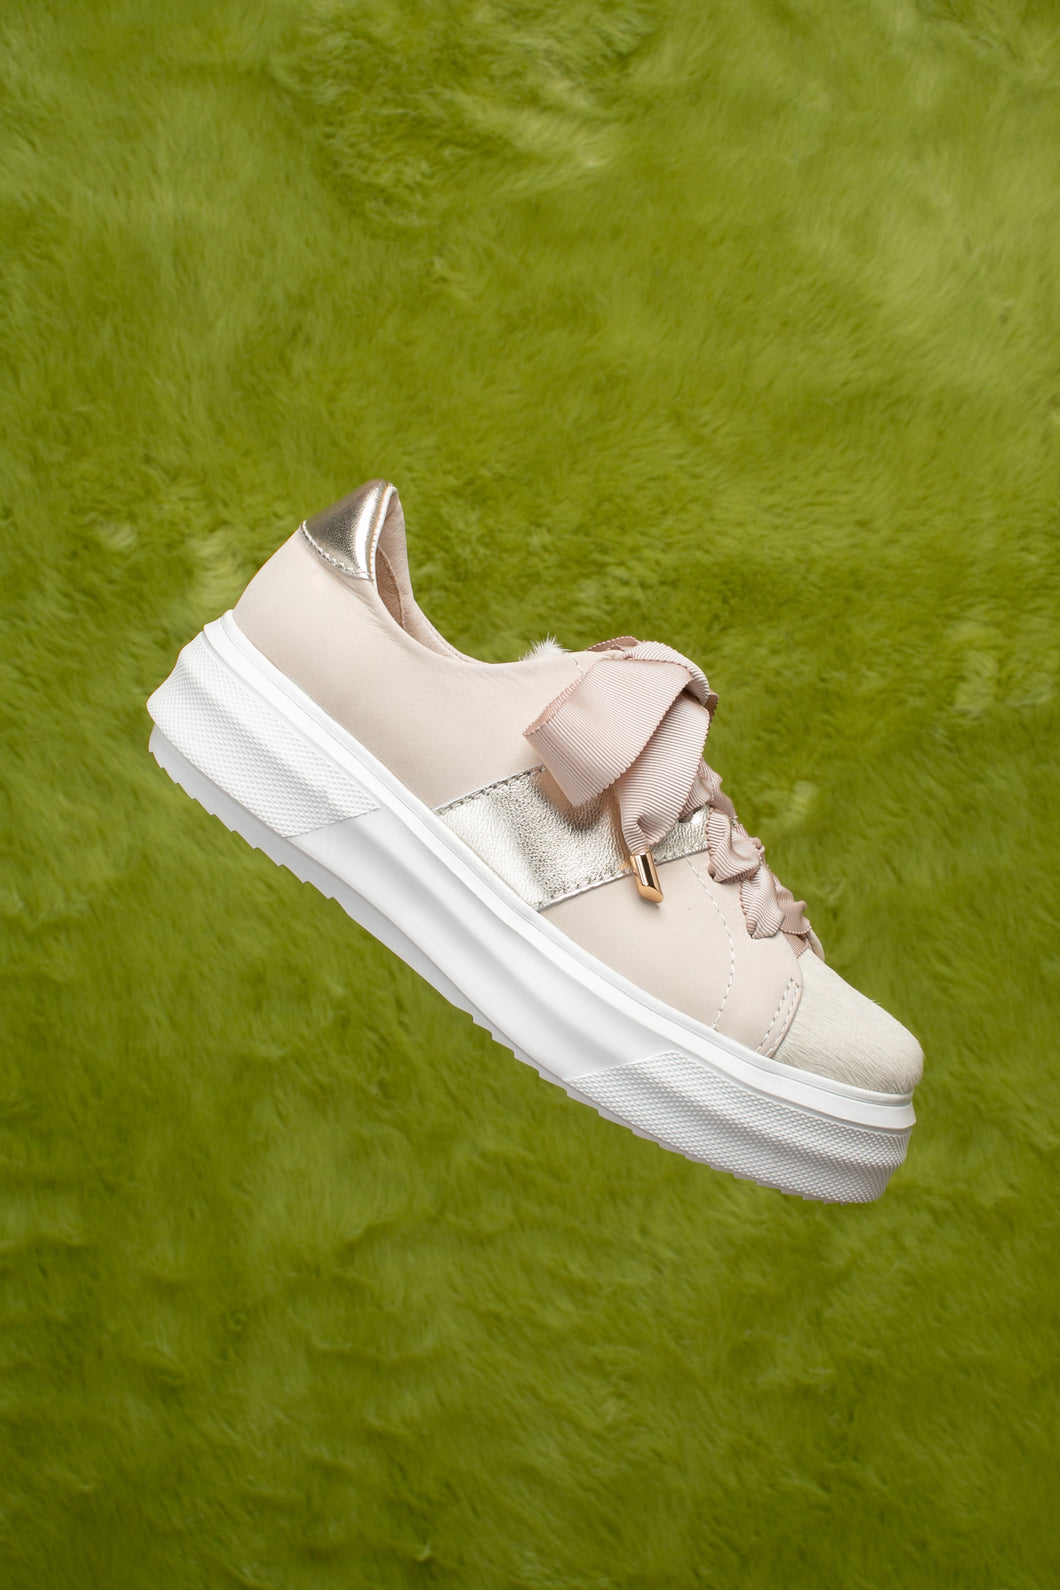 Beige pony hair leather lace-up sneaker with a light chunky white sole.